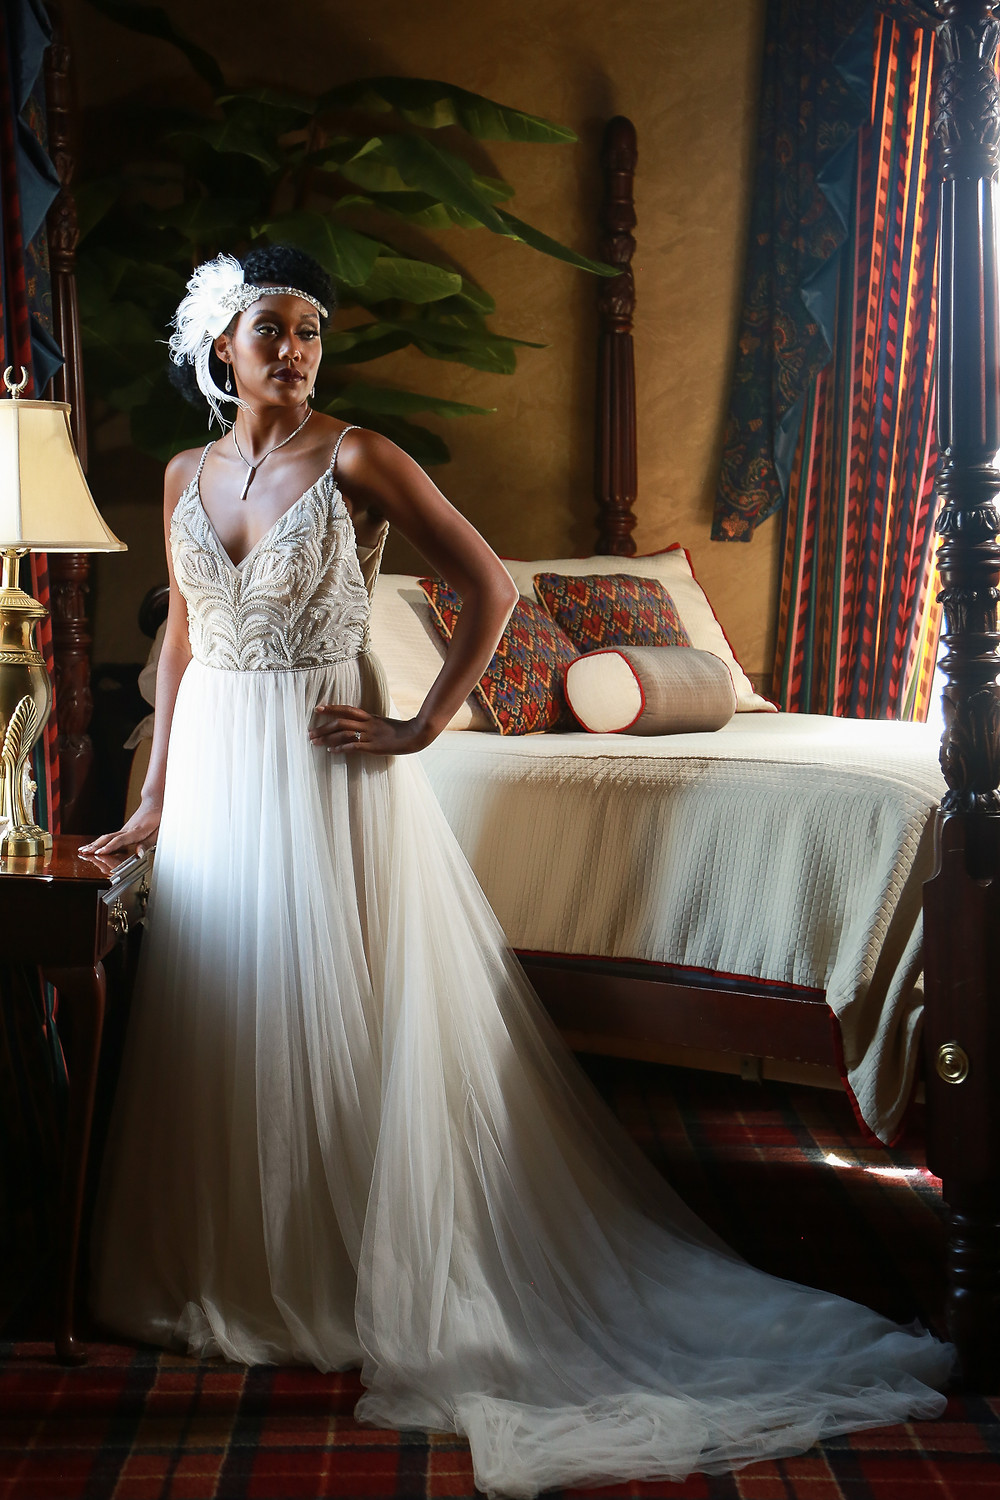 A black woman in a wedding dress standing in a bedroom: she is to the left of the frame with her right hand on the nightstand which holds a lamp, her left hand on her hip, her head turned toward the right of the frame staring outside of the frame. Her black hair is in an updo and is adorned with a white feather hairpiece. She wears a silver necklace and a white spaghetti-strap v-neck a-line dress with beaded feather embellishments on the bodice. There is a large potted plant towering above her from behind in the corner behind the bed, which is caddy-cornered in the shot. The four-poster bed has a white coverlet and two patterned throw pillows and a bolster pillow in front of them. The walls of the room are yellow and the curtains and carpet are a red and black plaid.